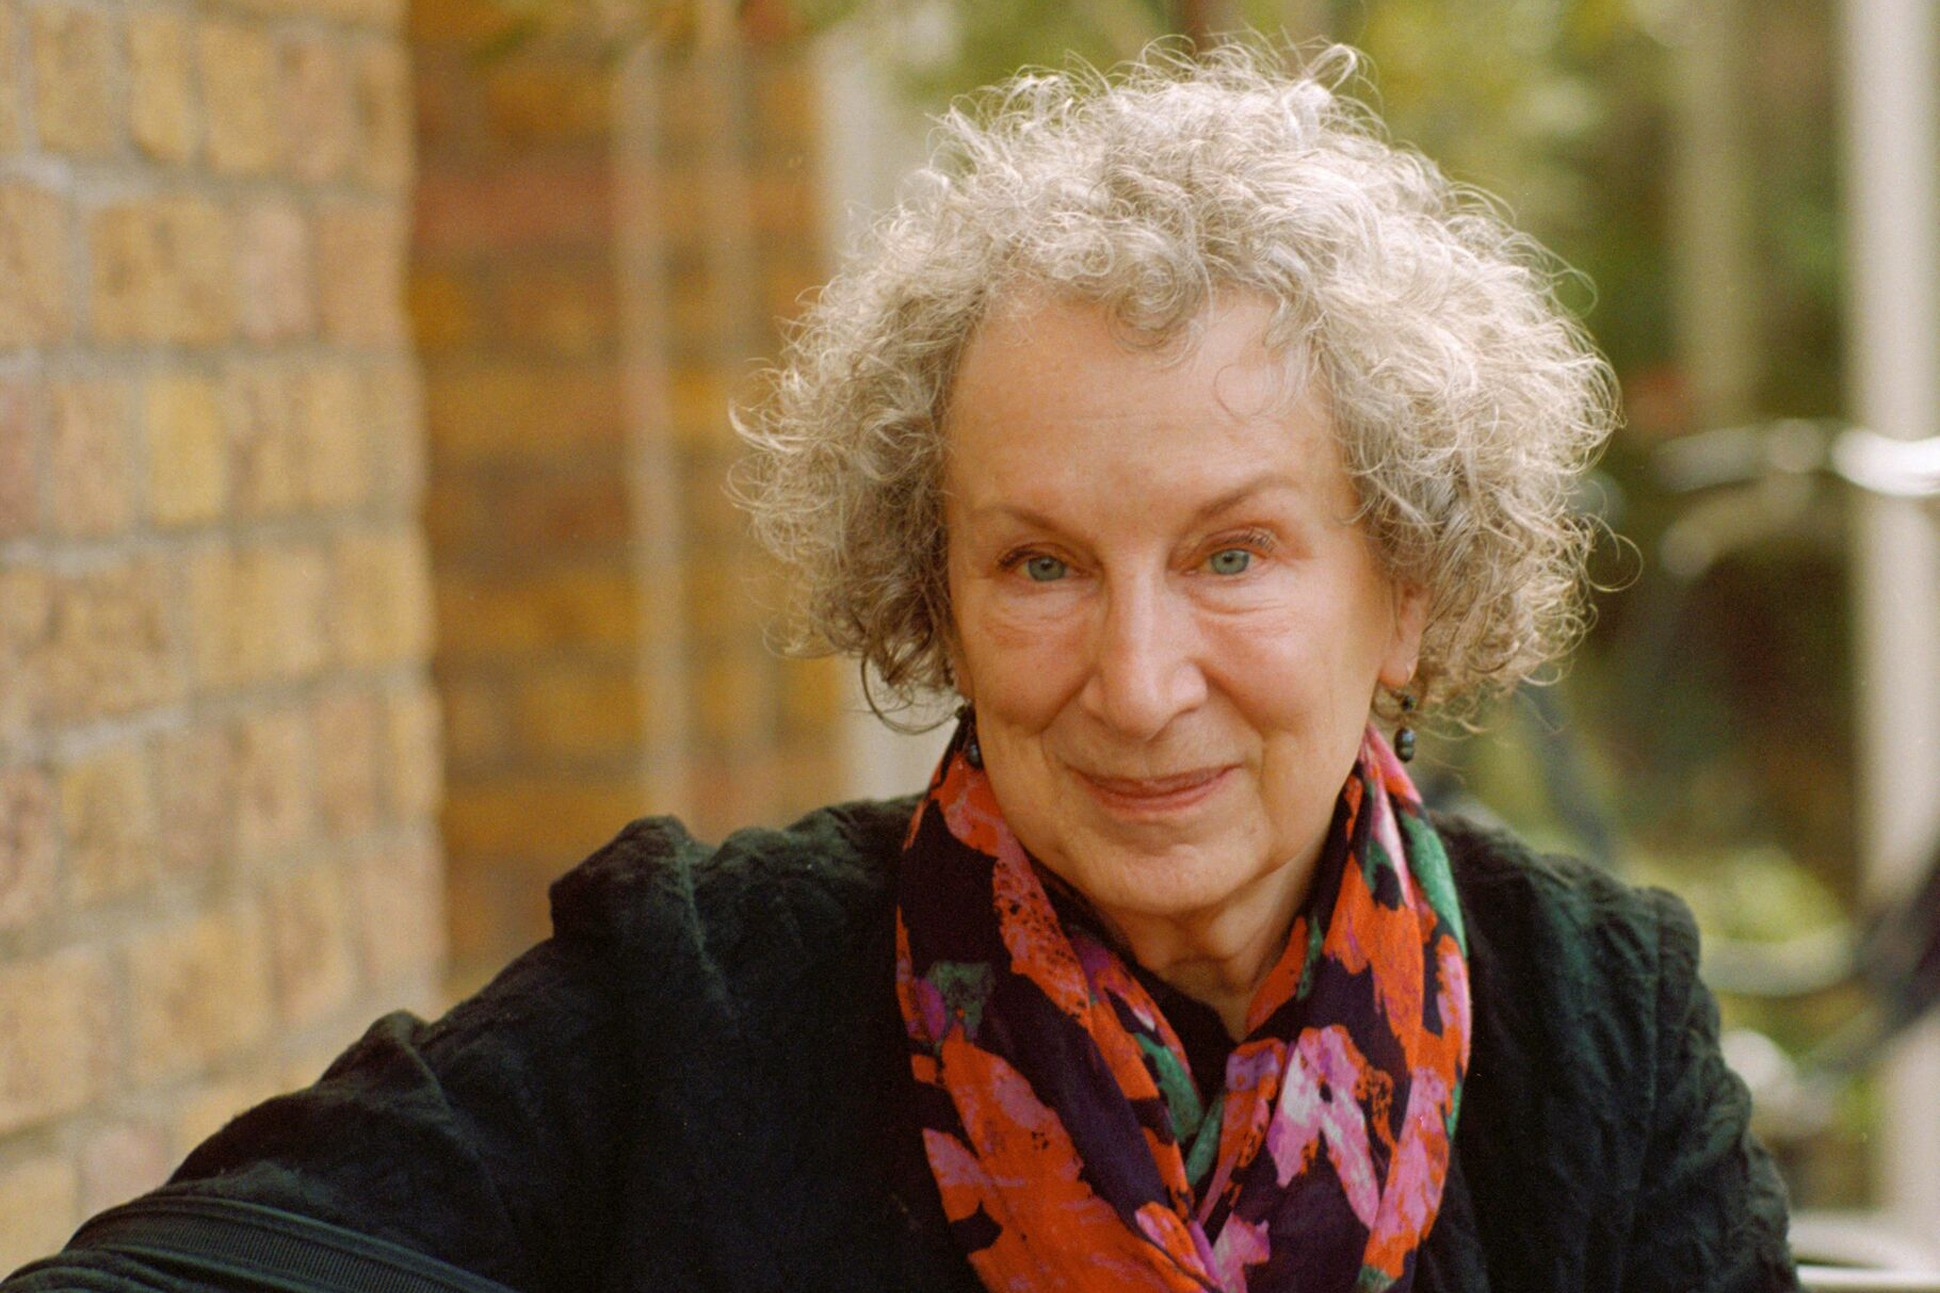 gathering poet by margaret atwood